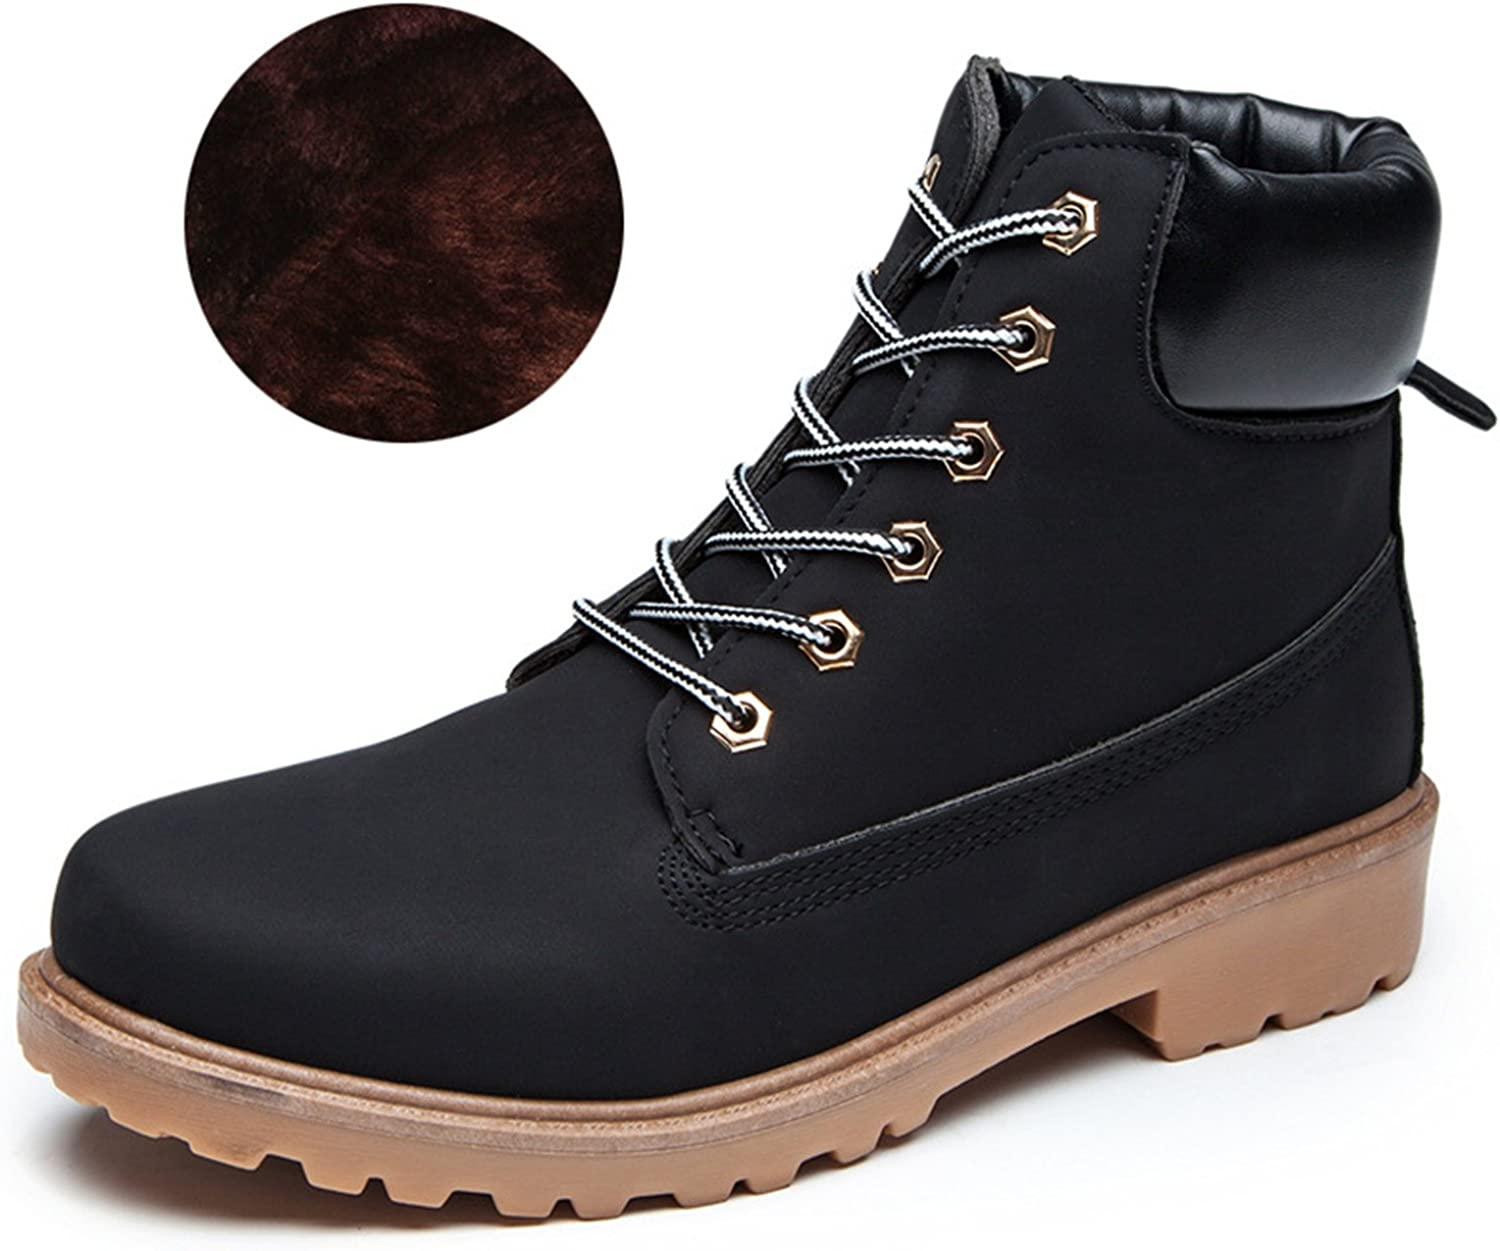 Marvin Cook Comfortable Platform Boots Women Ankle Boots Suede Rubber Boots